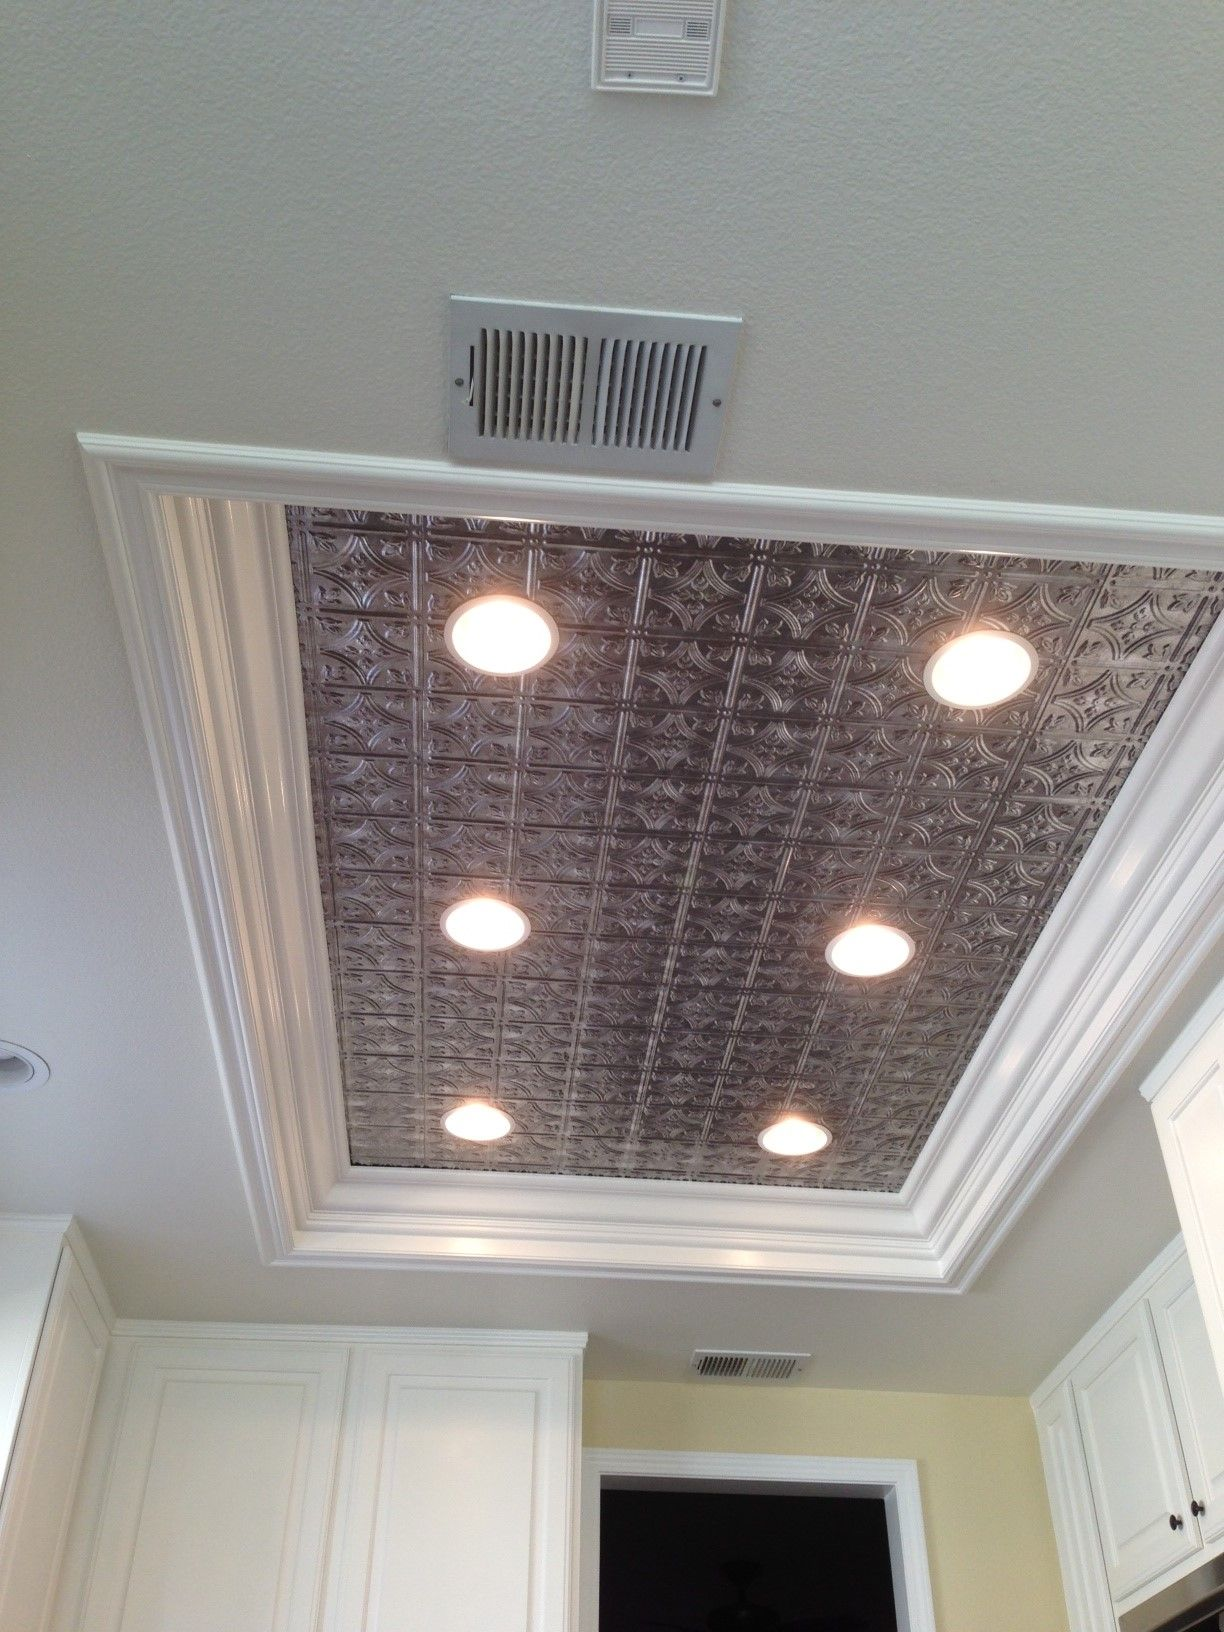 Ceiling Lighting Remodel Flourescent Light Box In Kitchen We Also